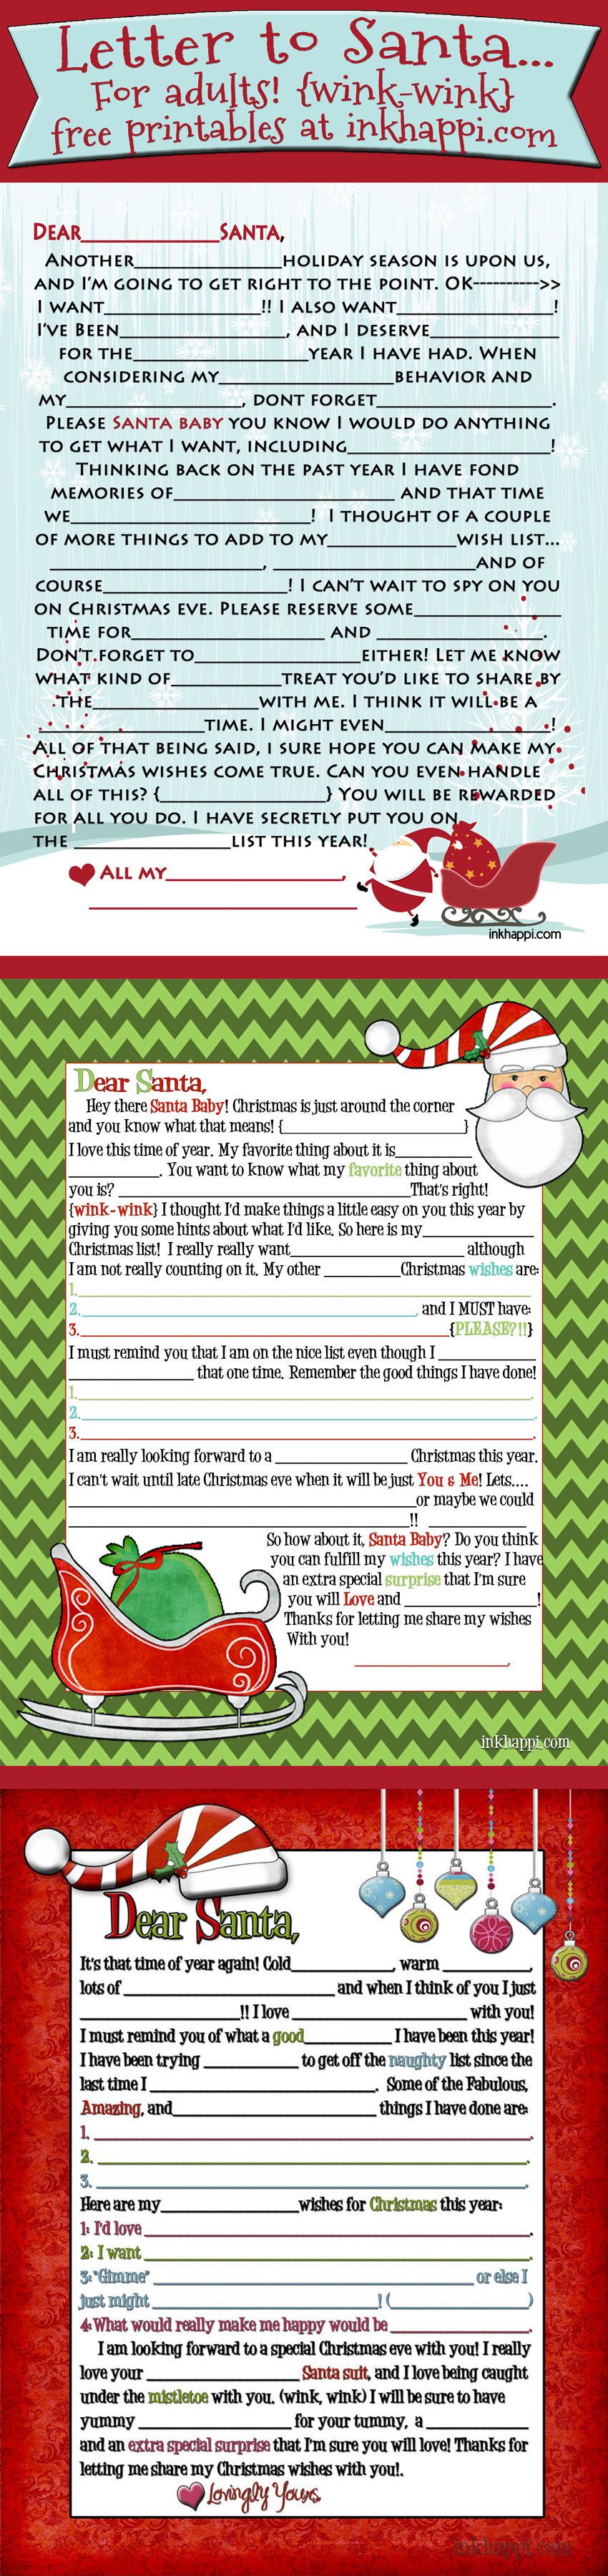 Letter to santa 2013 for adults wink wink inkhappi a letter to santa for adults wink wink mad lib spiritdancerdesigns Gallery